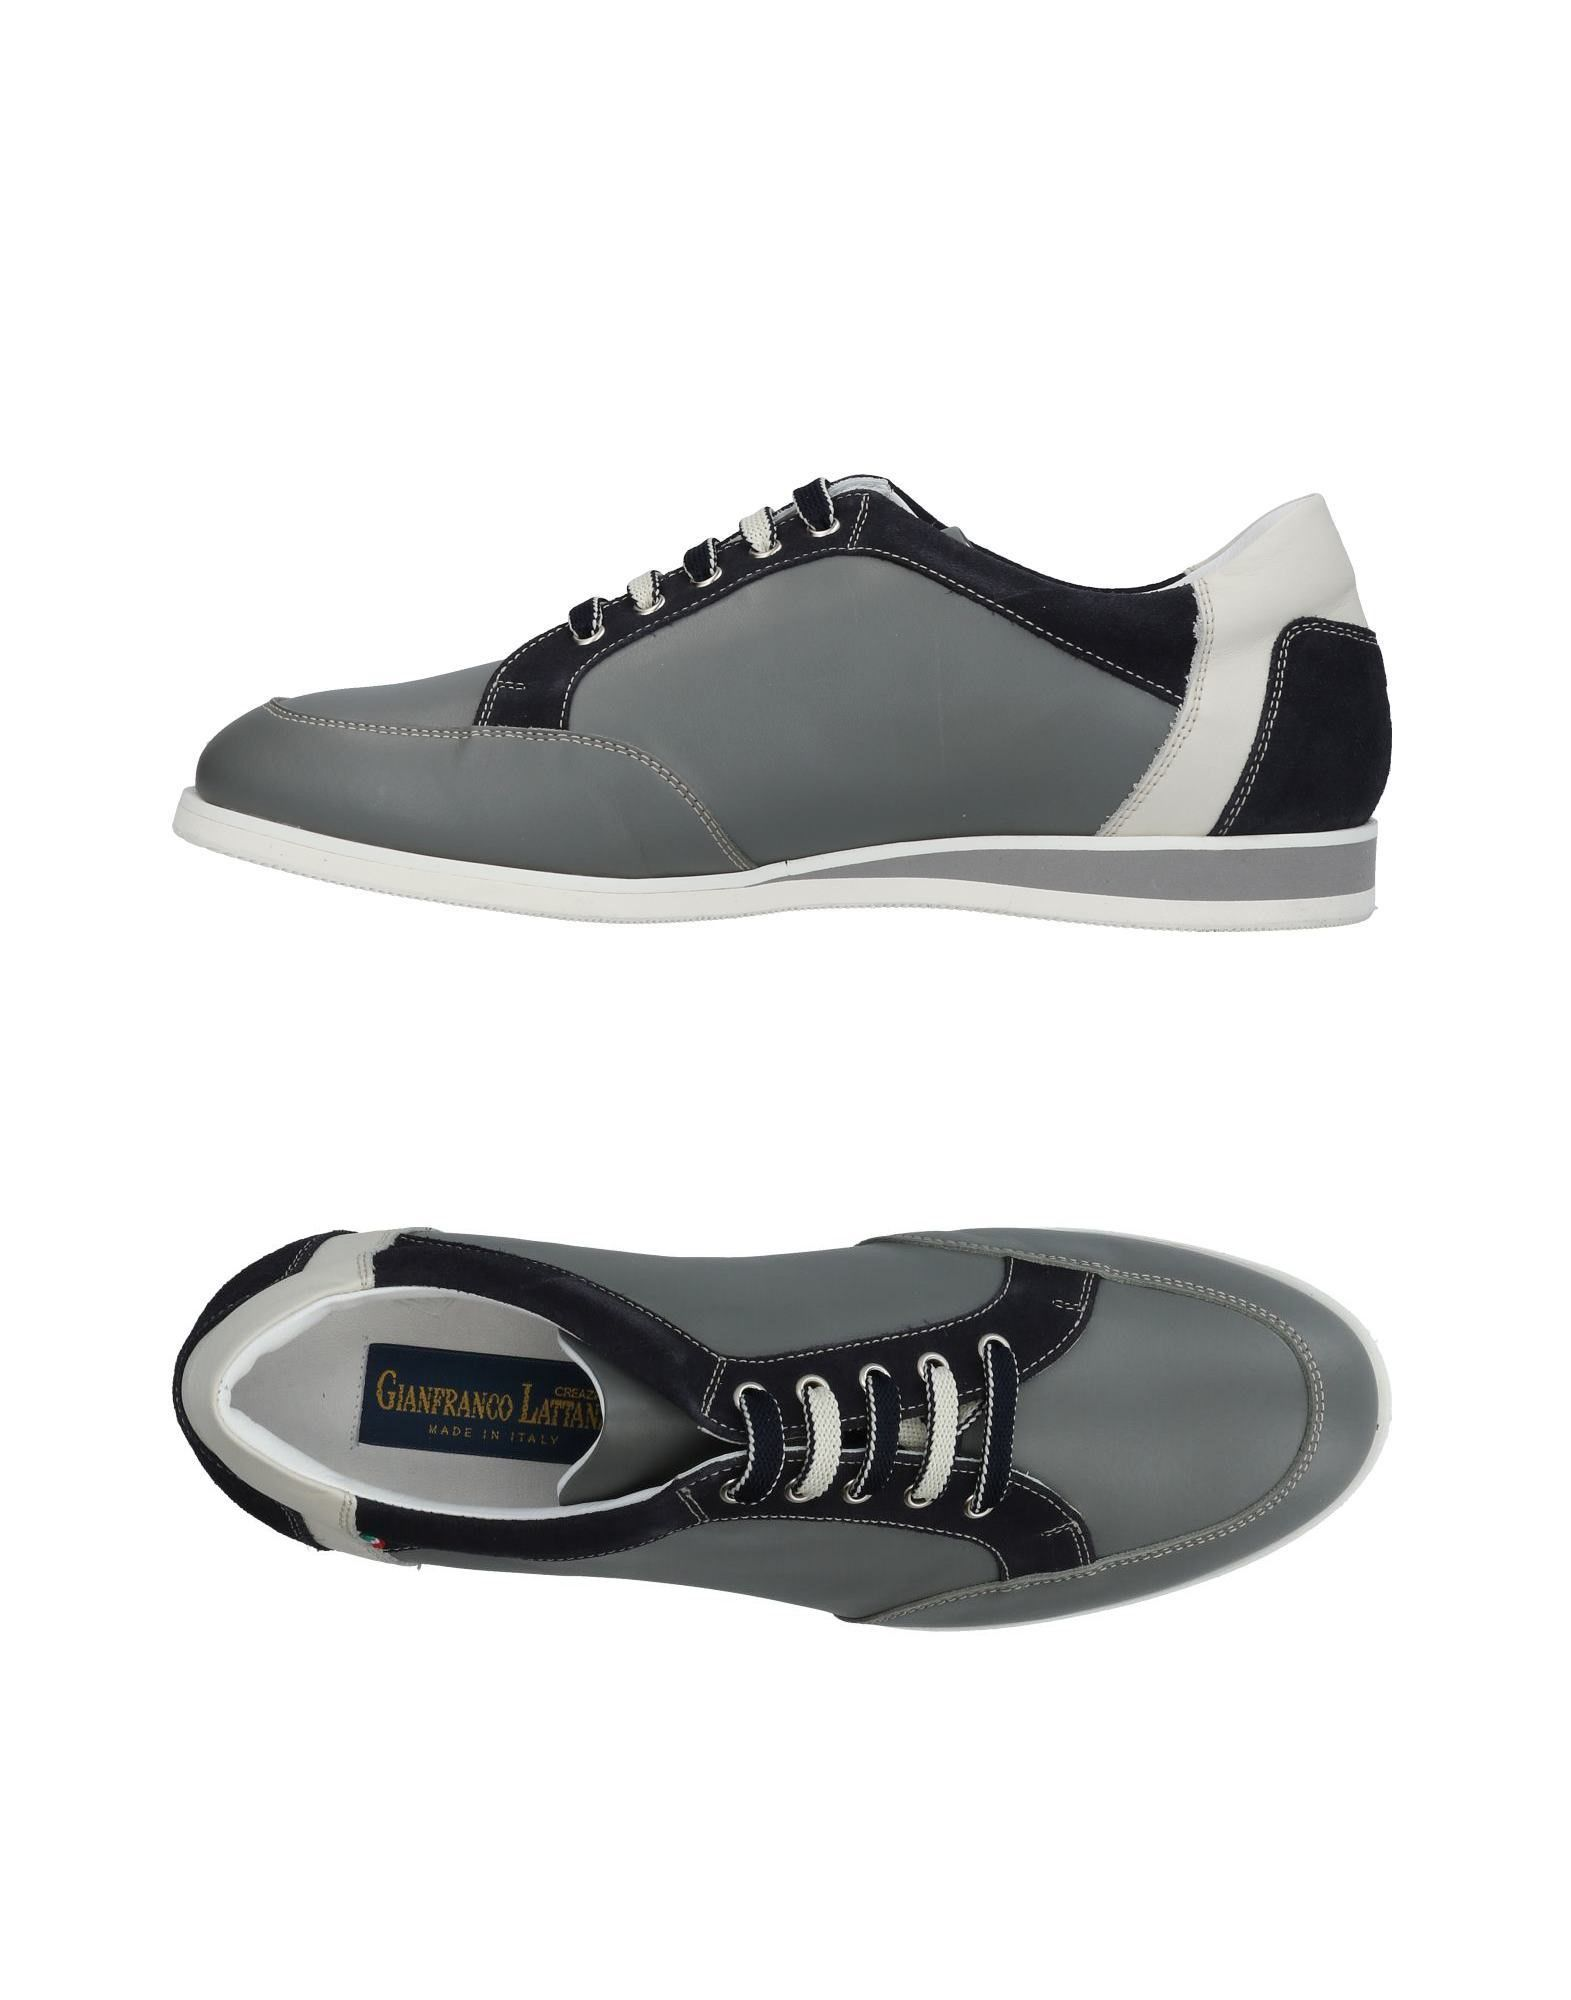 Sneakers Gianfranco Lattanzi Homme - Sneakers Gianfranco Lattanzi sur